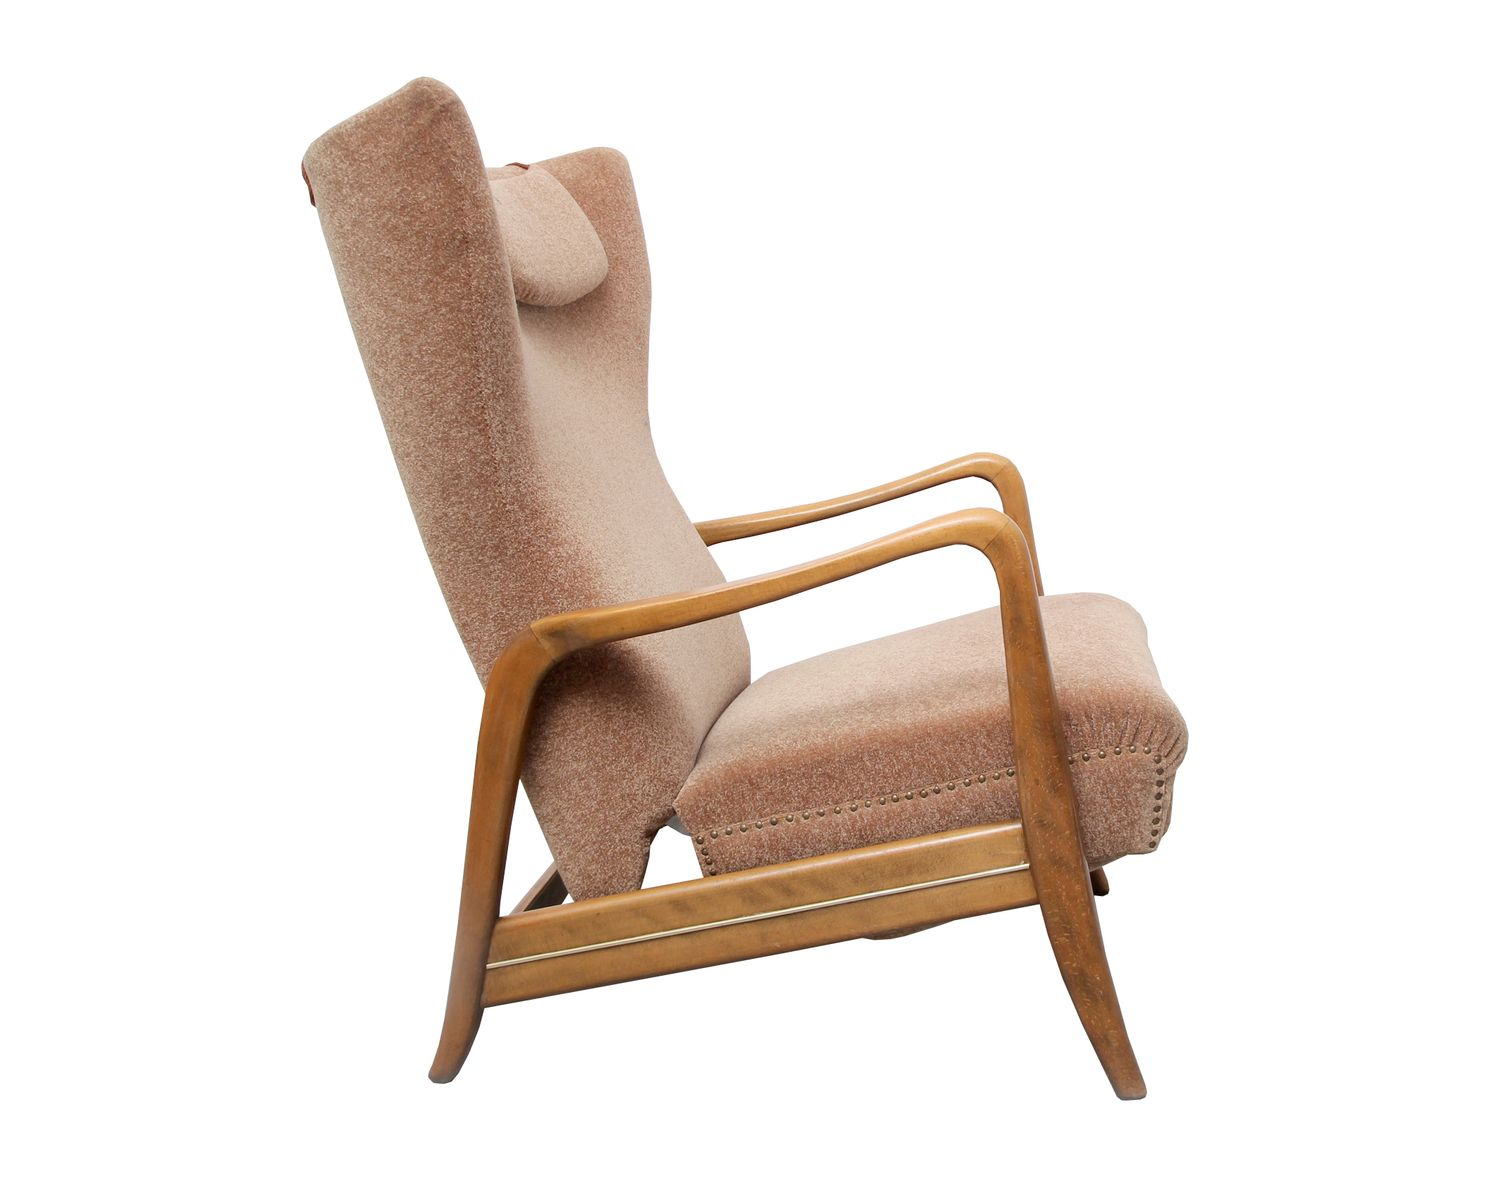 reclining wingback chair wood folding chairs 1950s for sale at pamono